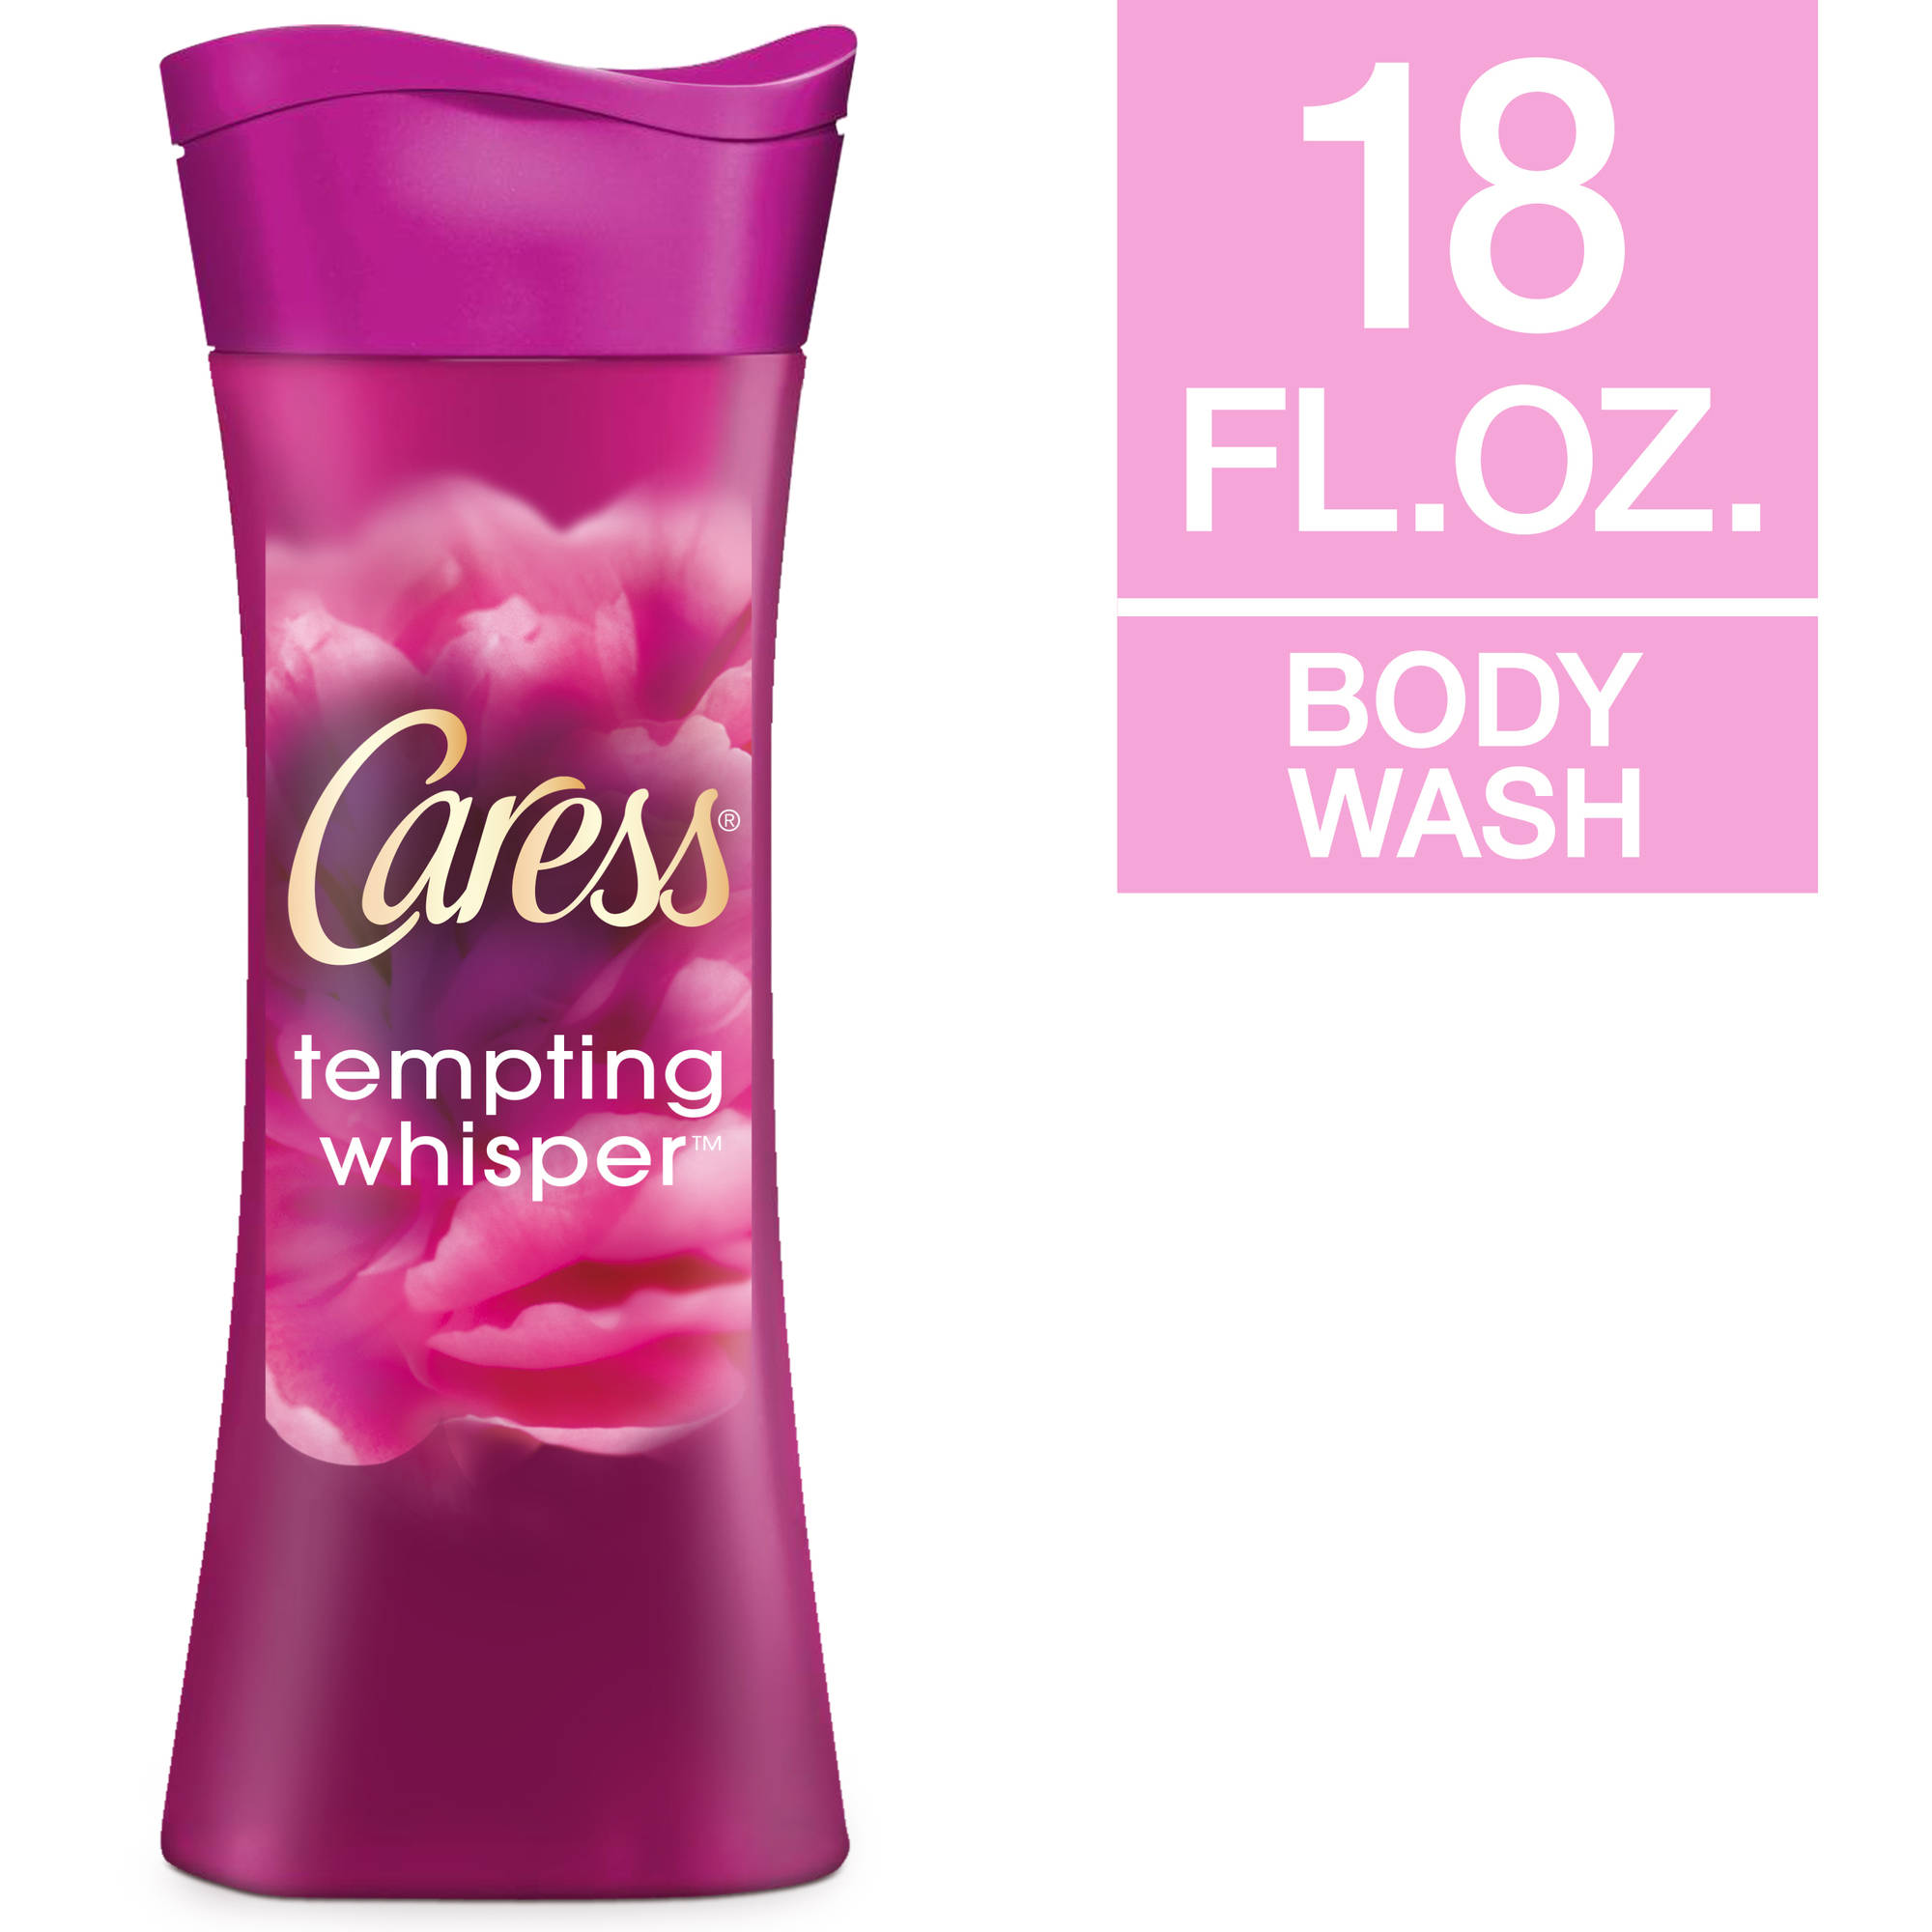 Caress Tempting Whisper Wild Peony & Red Plum Scent Body Wash, 18 fl oz